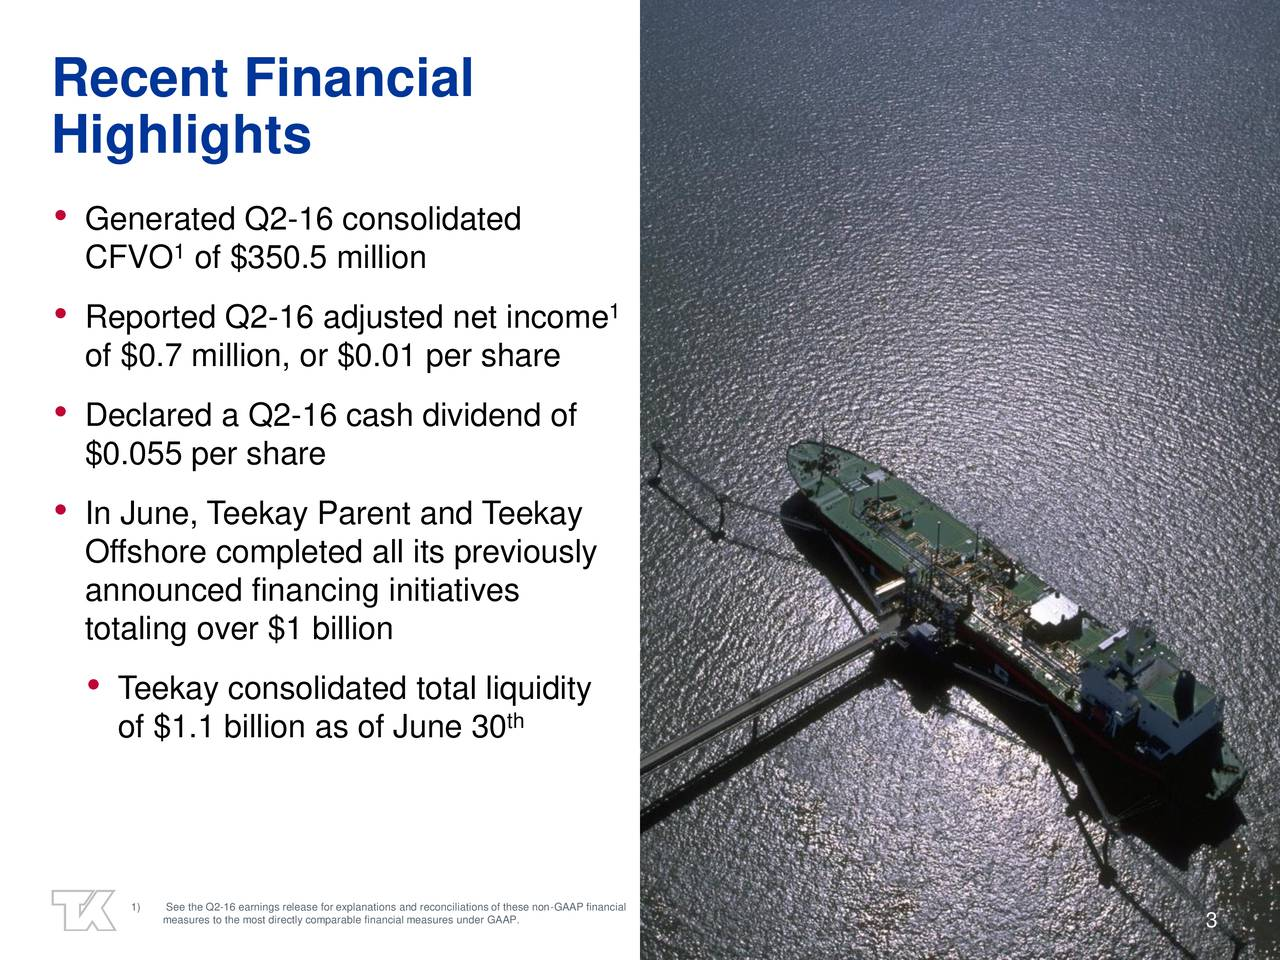 Highlights Generated Q2-16 consolidated 1 CFVO of $350.5 million 1 Add picture Reported Q2-16 adjusted net income of $0.7 million, or $0.01 per share Declared a Q2-16 cash dividend of $0.055 per share In June, Teekay Parent and Teekay Offshore completed all its previously announced financing initiatives totaling over $1 billion Teekay consolidated total liquidity of $1.1 billion as of June 30 th 1) See the Q2-16 earnings release for explanations and reconciliations of these non-GAAP financial measures to the most directly comparable financial measures under GAAP. 3